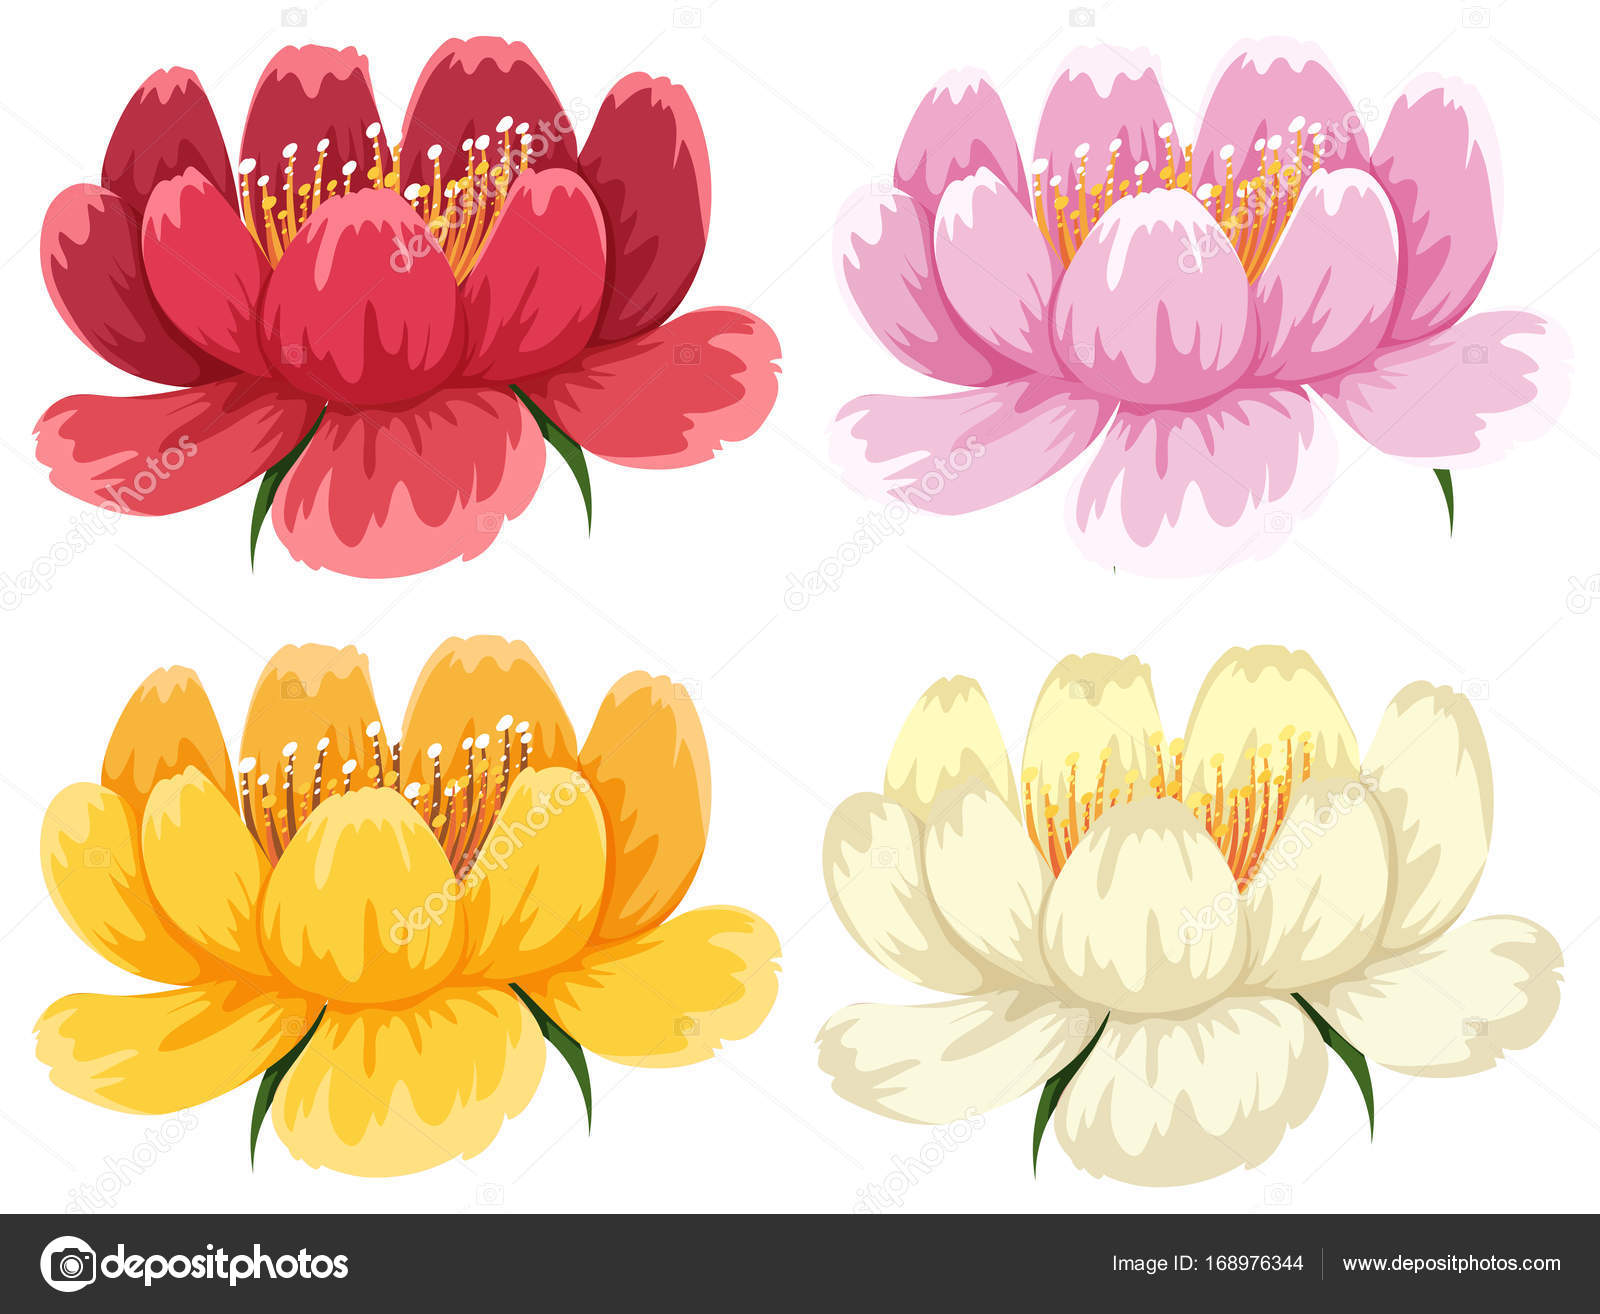 Four colors of the same type of flower stock vector brgfx 168976344 four colors of the same type of flower stock vector izmirmasajfo